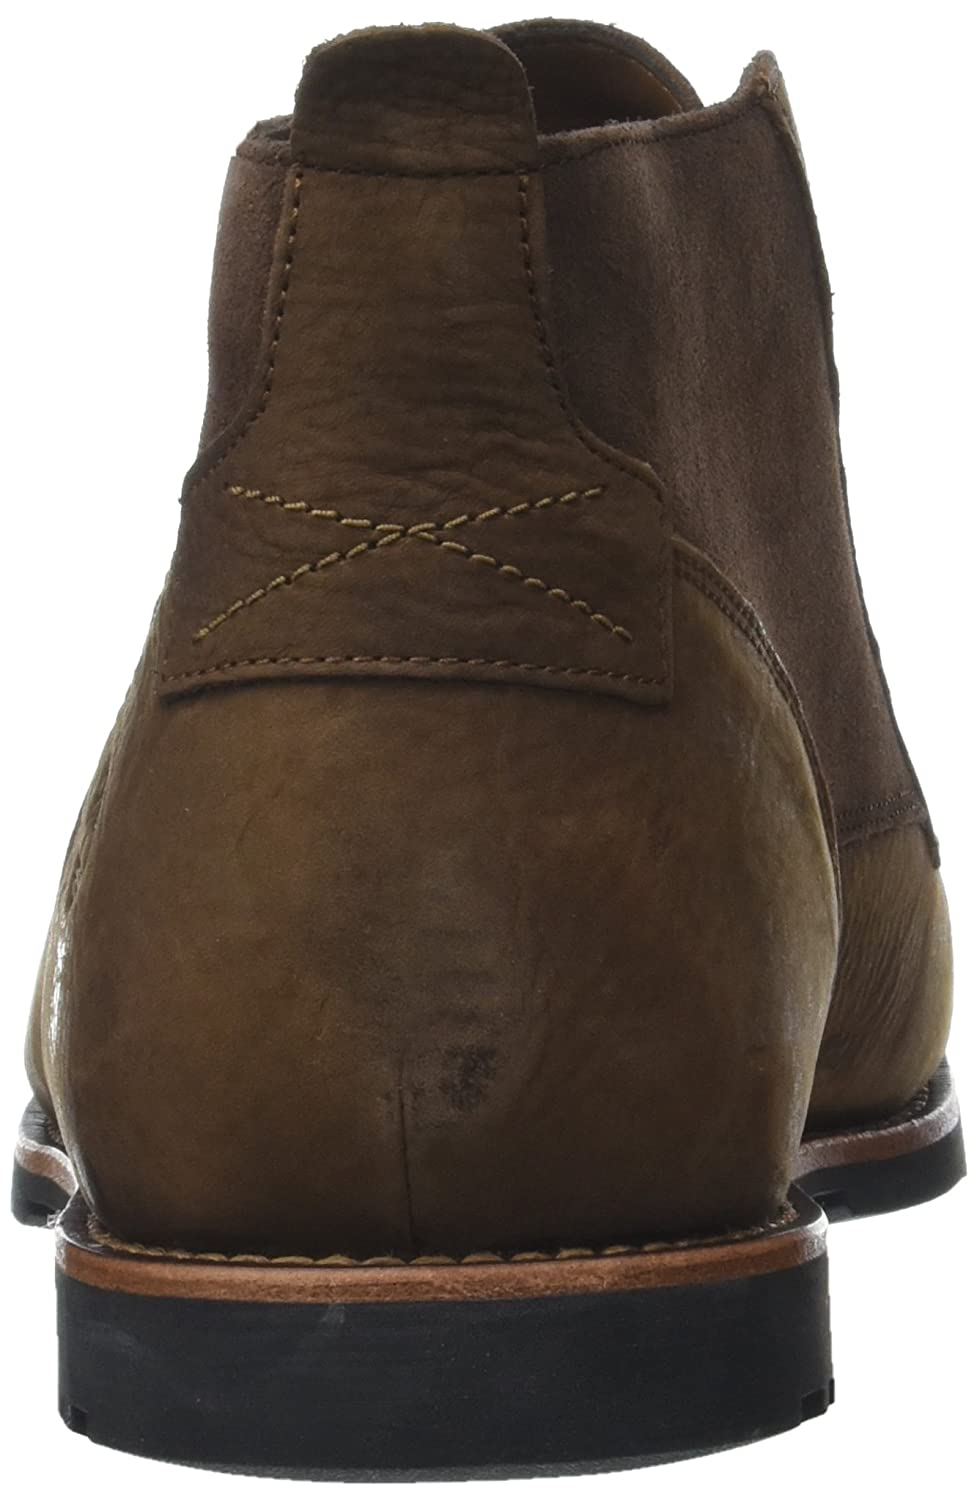 Homme KendrickBottesamp; Timberland Classiques Homme KendrickBottesamp; Classiques Timberland Bottines Timberland Bottines Bottines Classiques KendrickBottesamp; vmnwN80